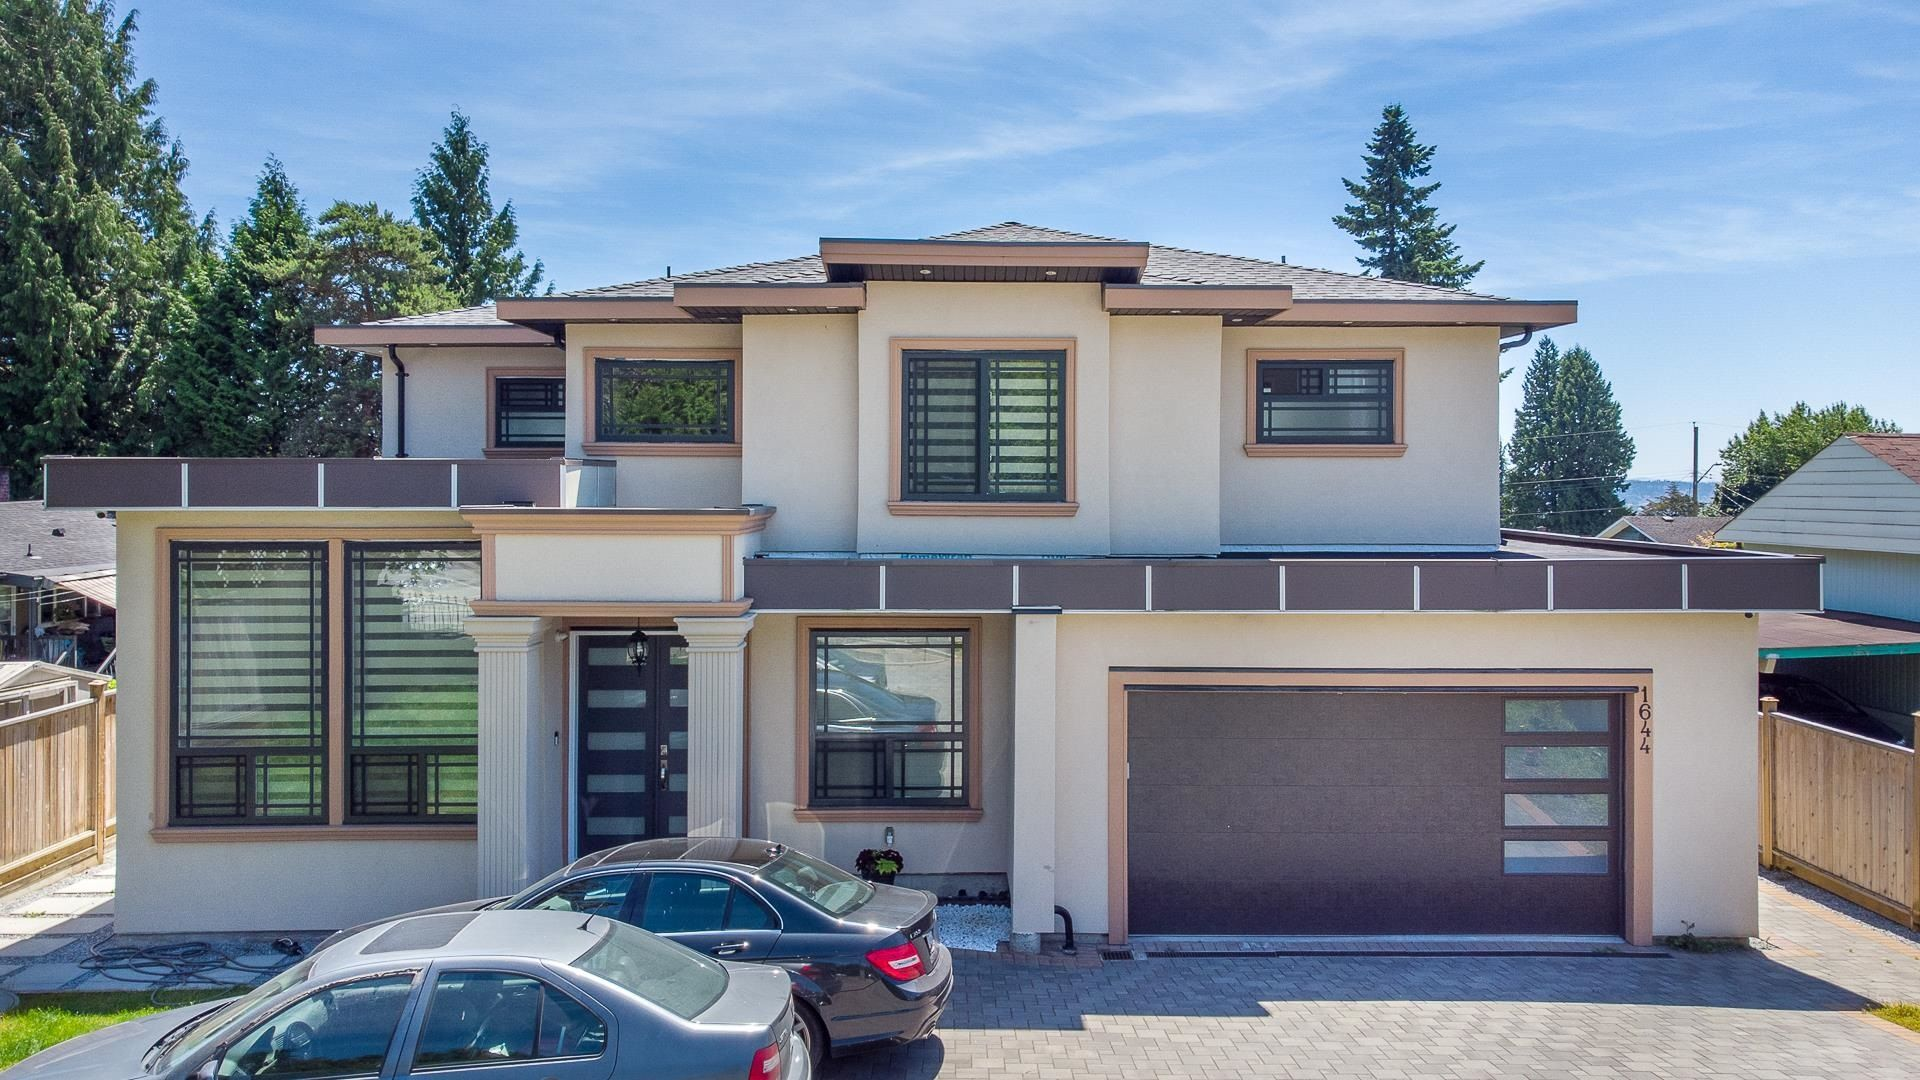 Main Photo: 1644 AUSTIN Avenue in Coquitlam: Central Coquitlam House for sale : MLS®# R2617809